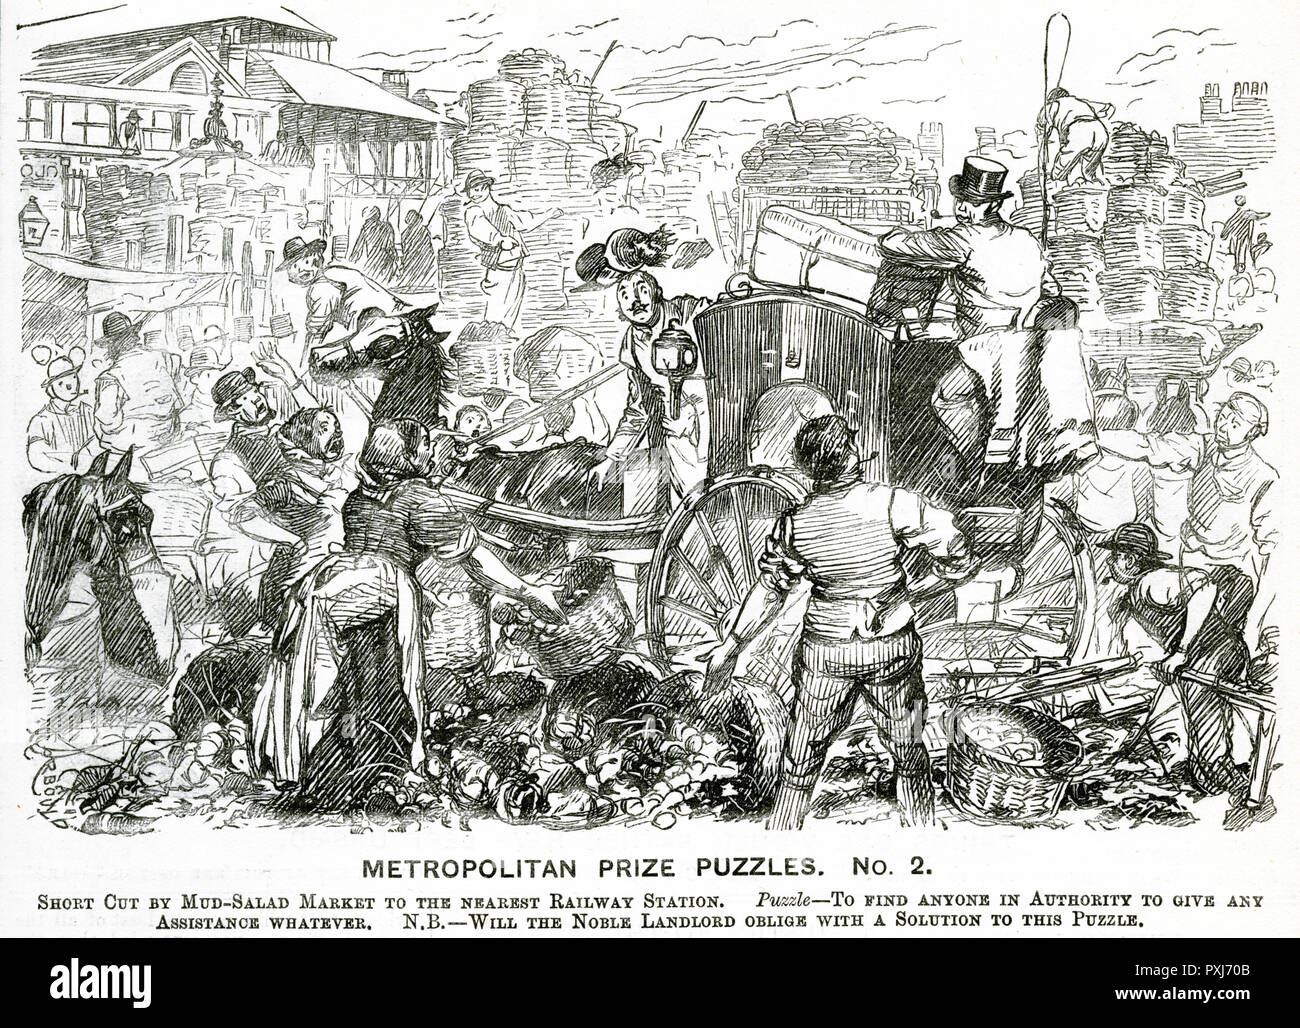 (Metropolitan Prize Puzzle No. 2). Dismay on the faces of the market stall sellers as a horse and cart tramples all over the baskets of veg.     Date: 1883 - Stock Image